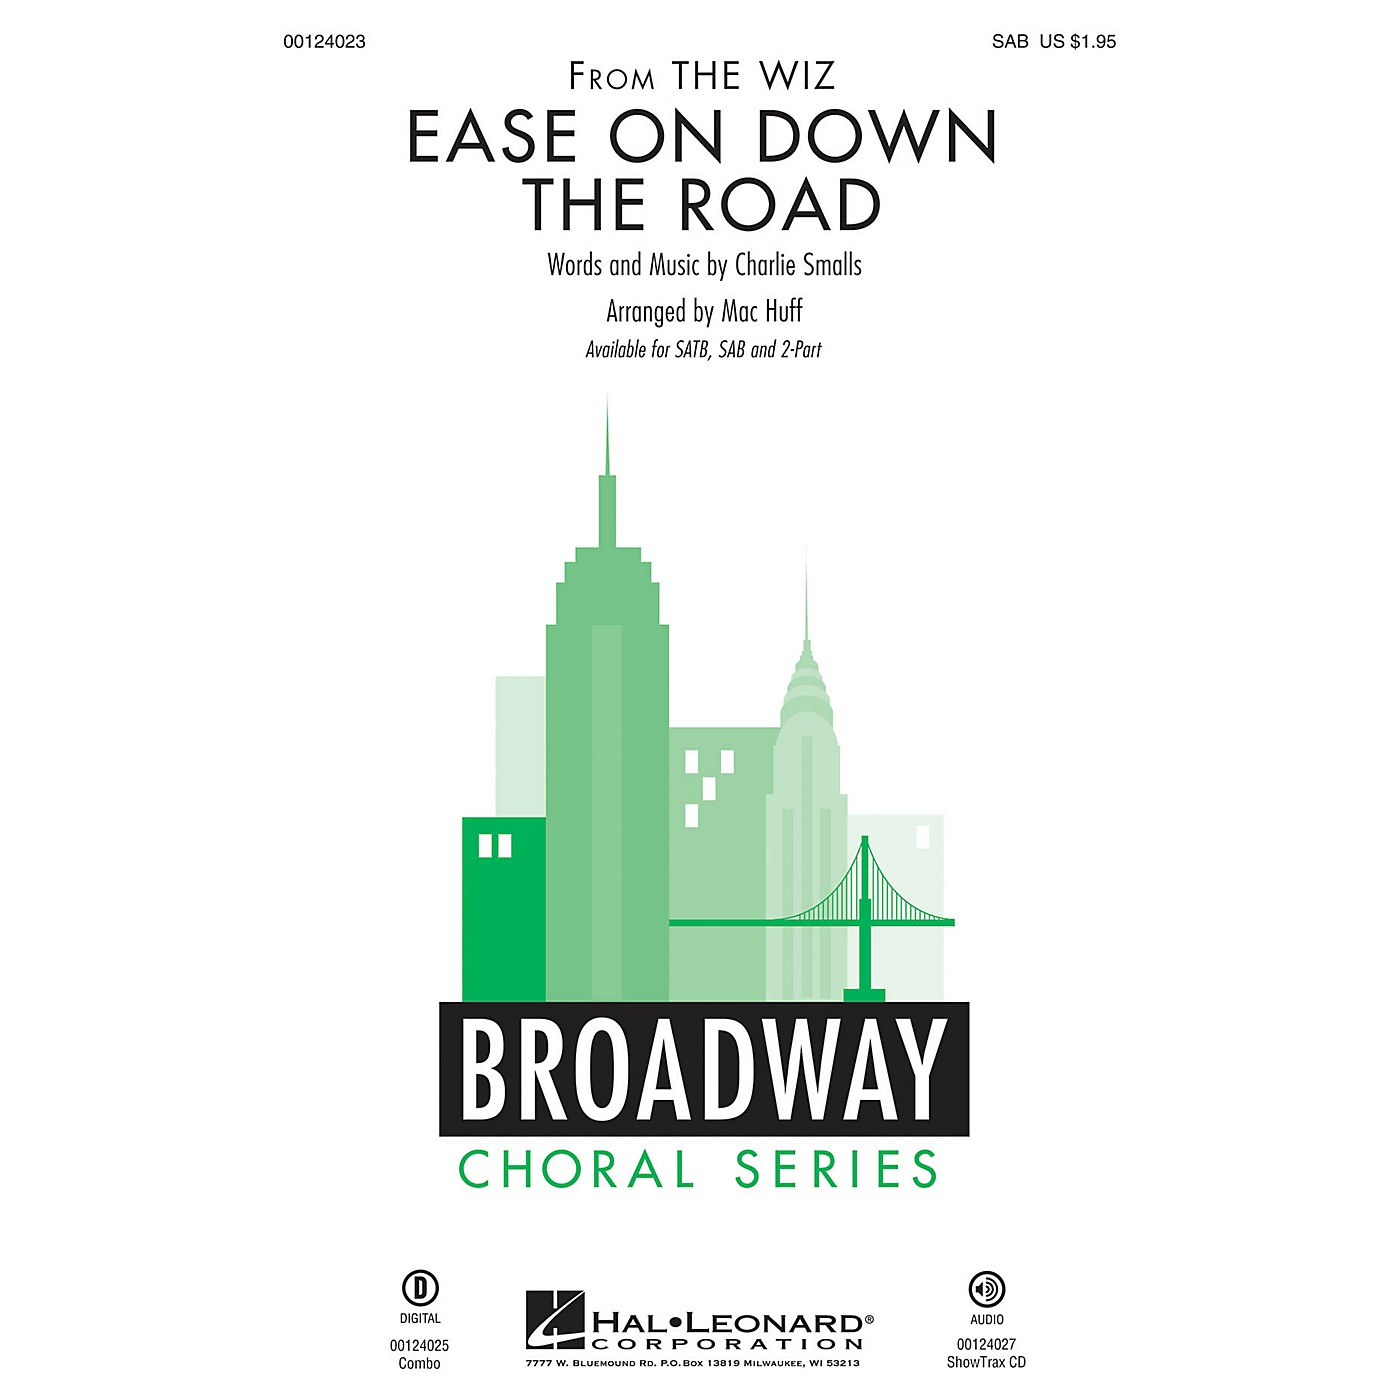 Hal Leonard Ease on Down the Road (from The Wiz) SAB arranged by Mac Huff thumbnail